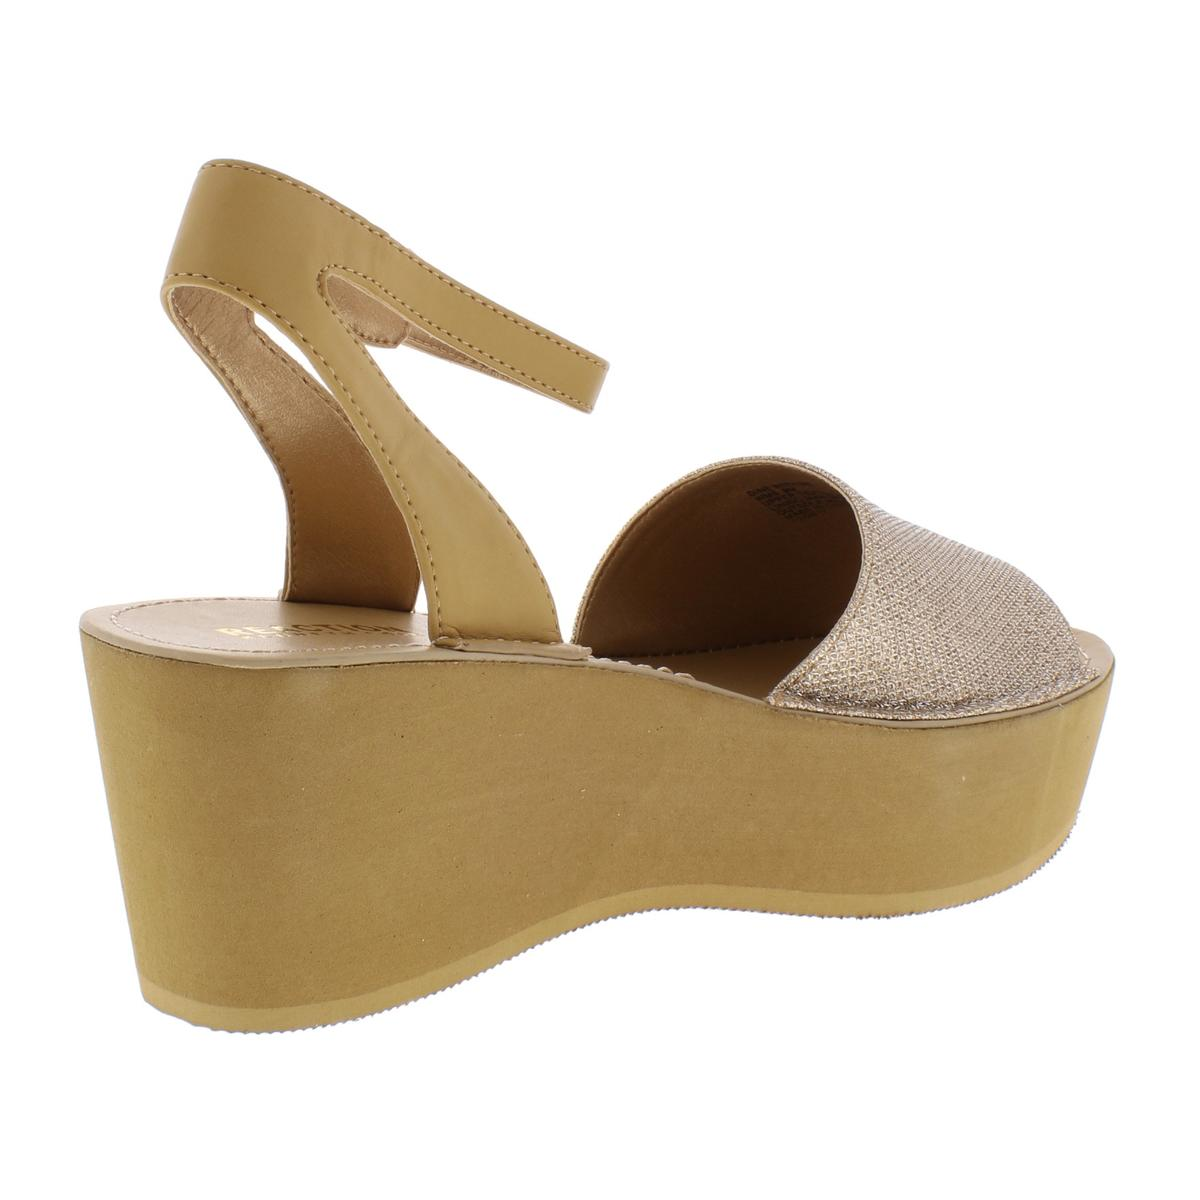 Kenneth-Cole-Reaction-Womens-Dine-With-Me-Shimmer-Wedge-Sandals-Shoes-BHFO-9558 thumbnail 4